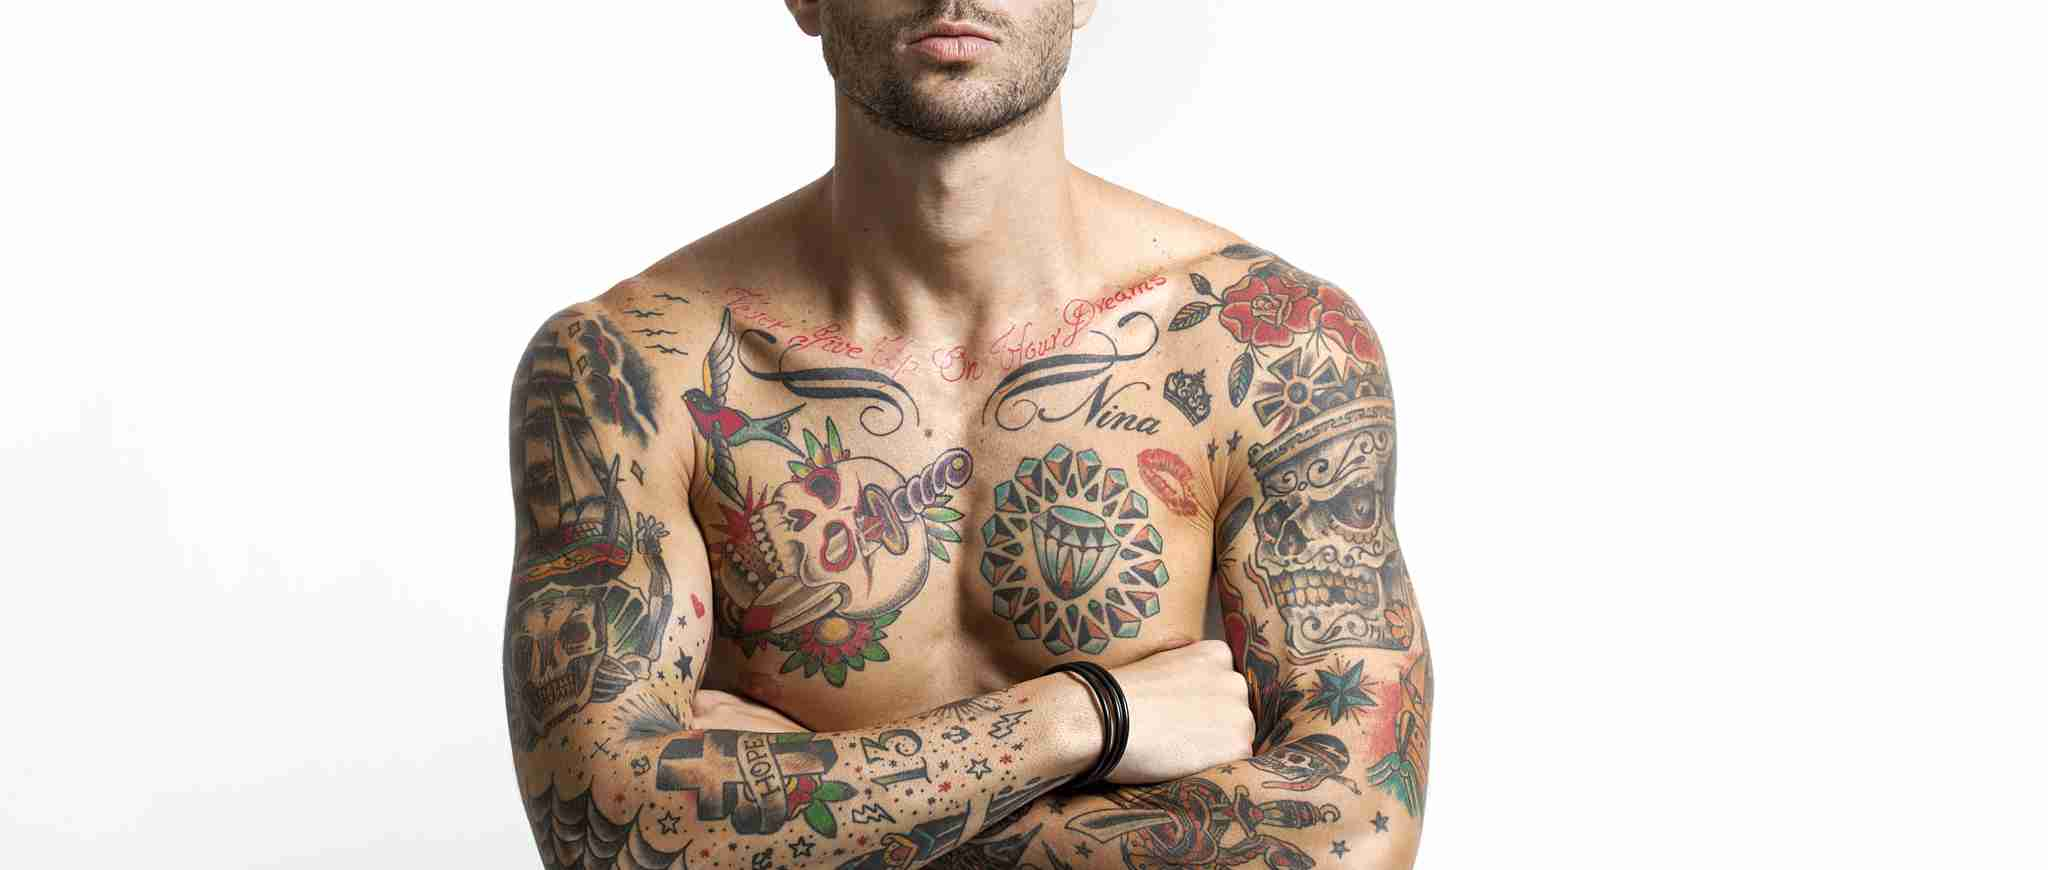 Inked Ritual tattooed male model